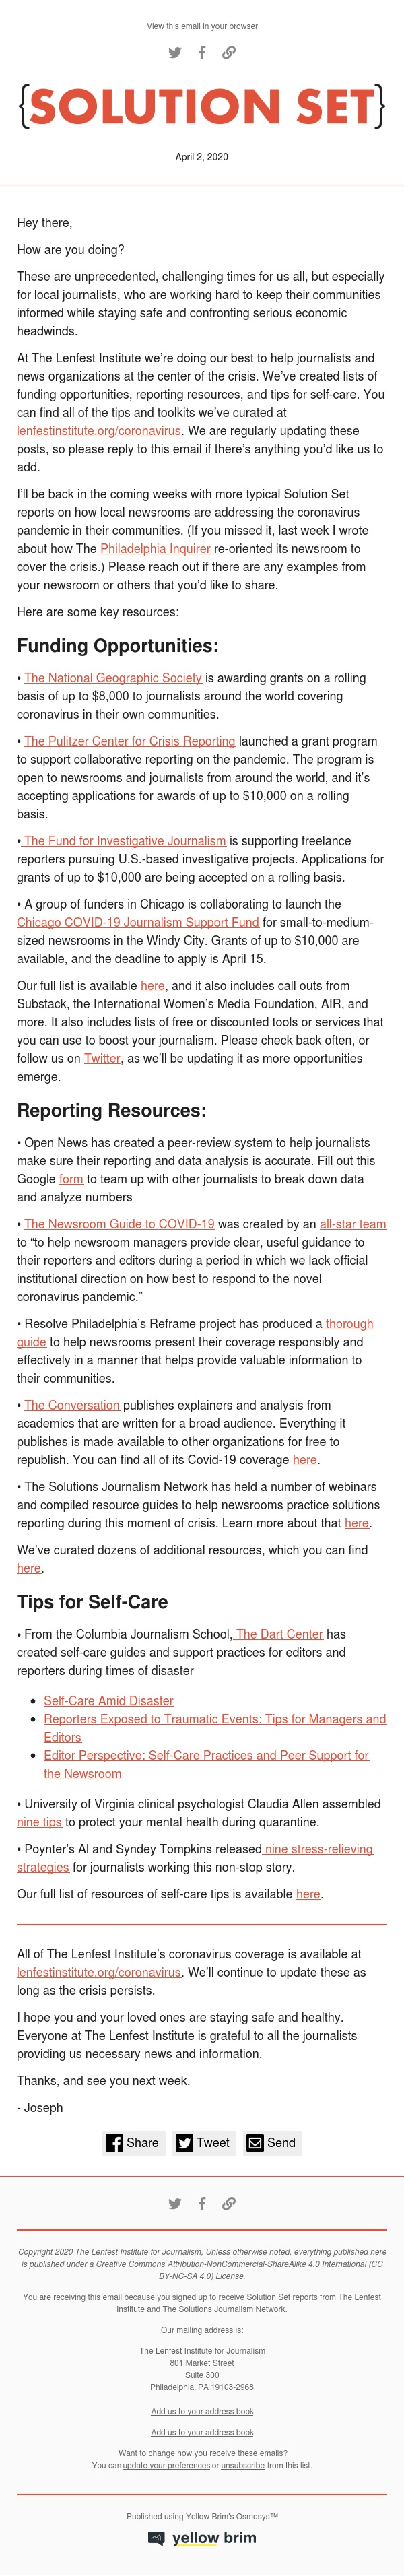 Solution Set: Resources for local journalists covering coronavirus